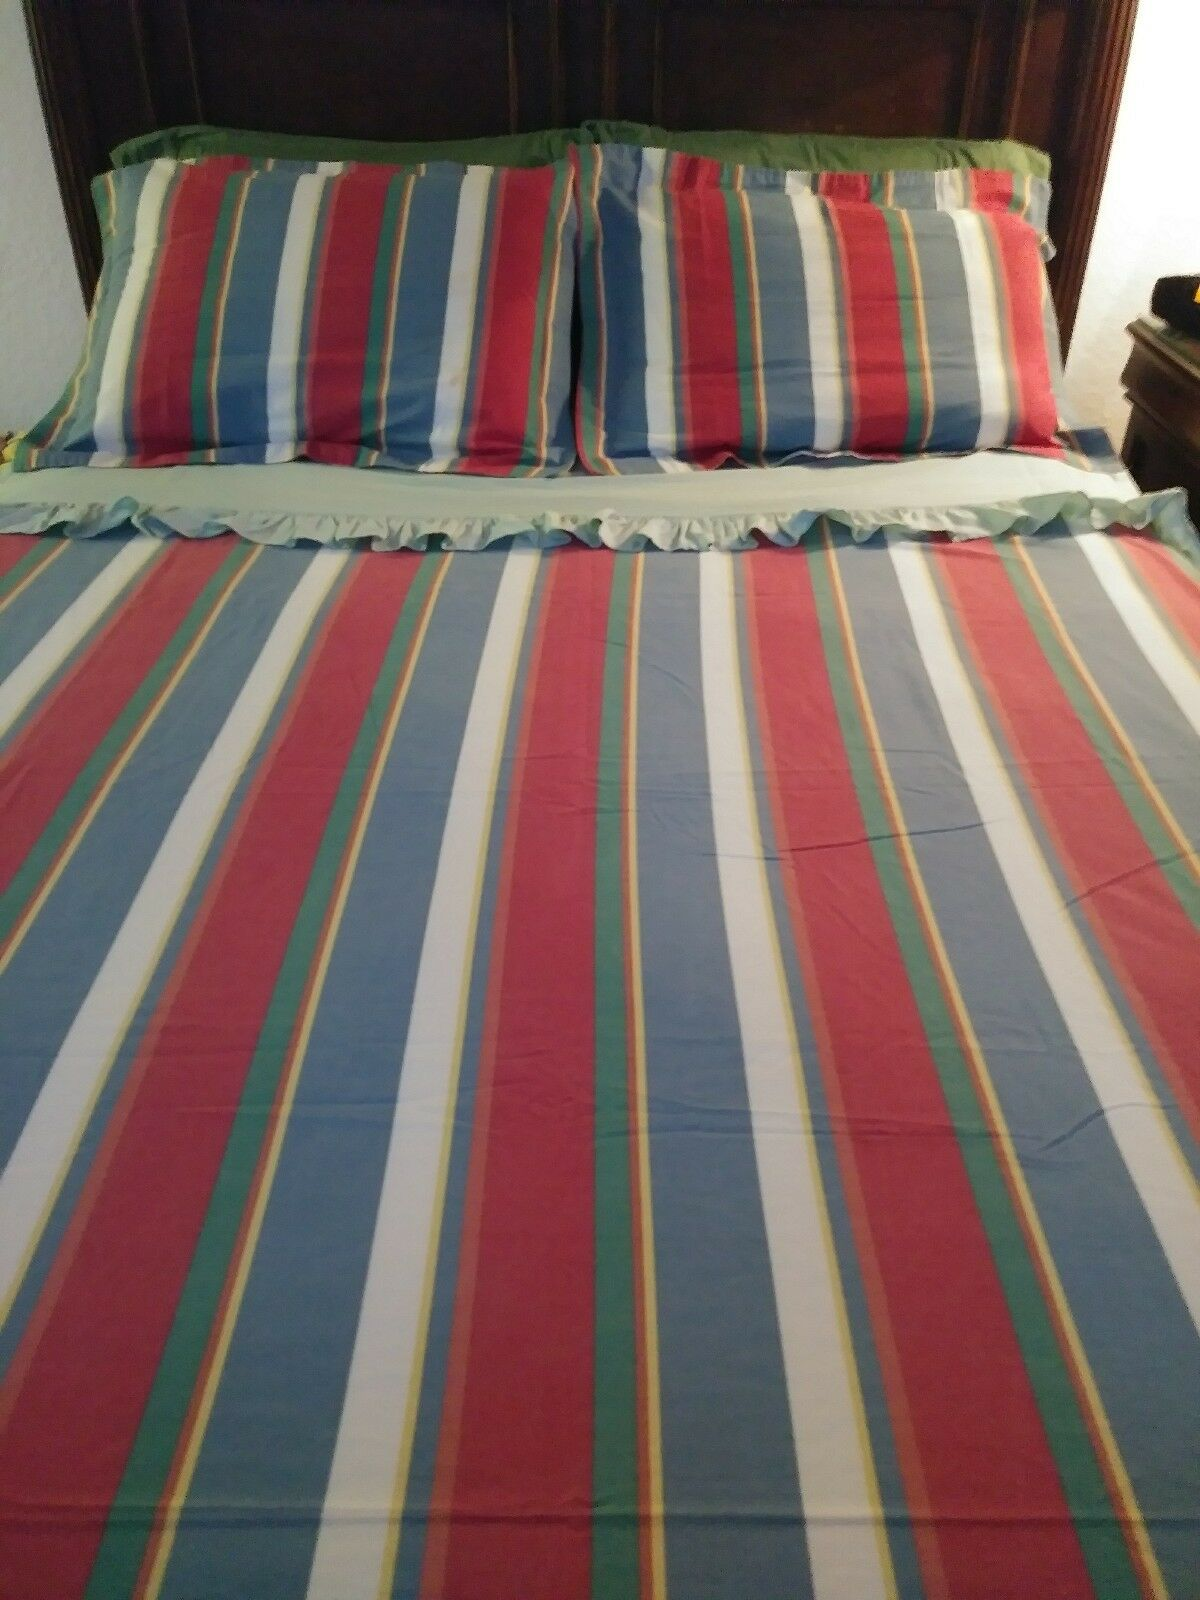 Vintage Ralph Lauren Flat Sheet With Red, bluee, Yellow, Green, and White Stripes